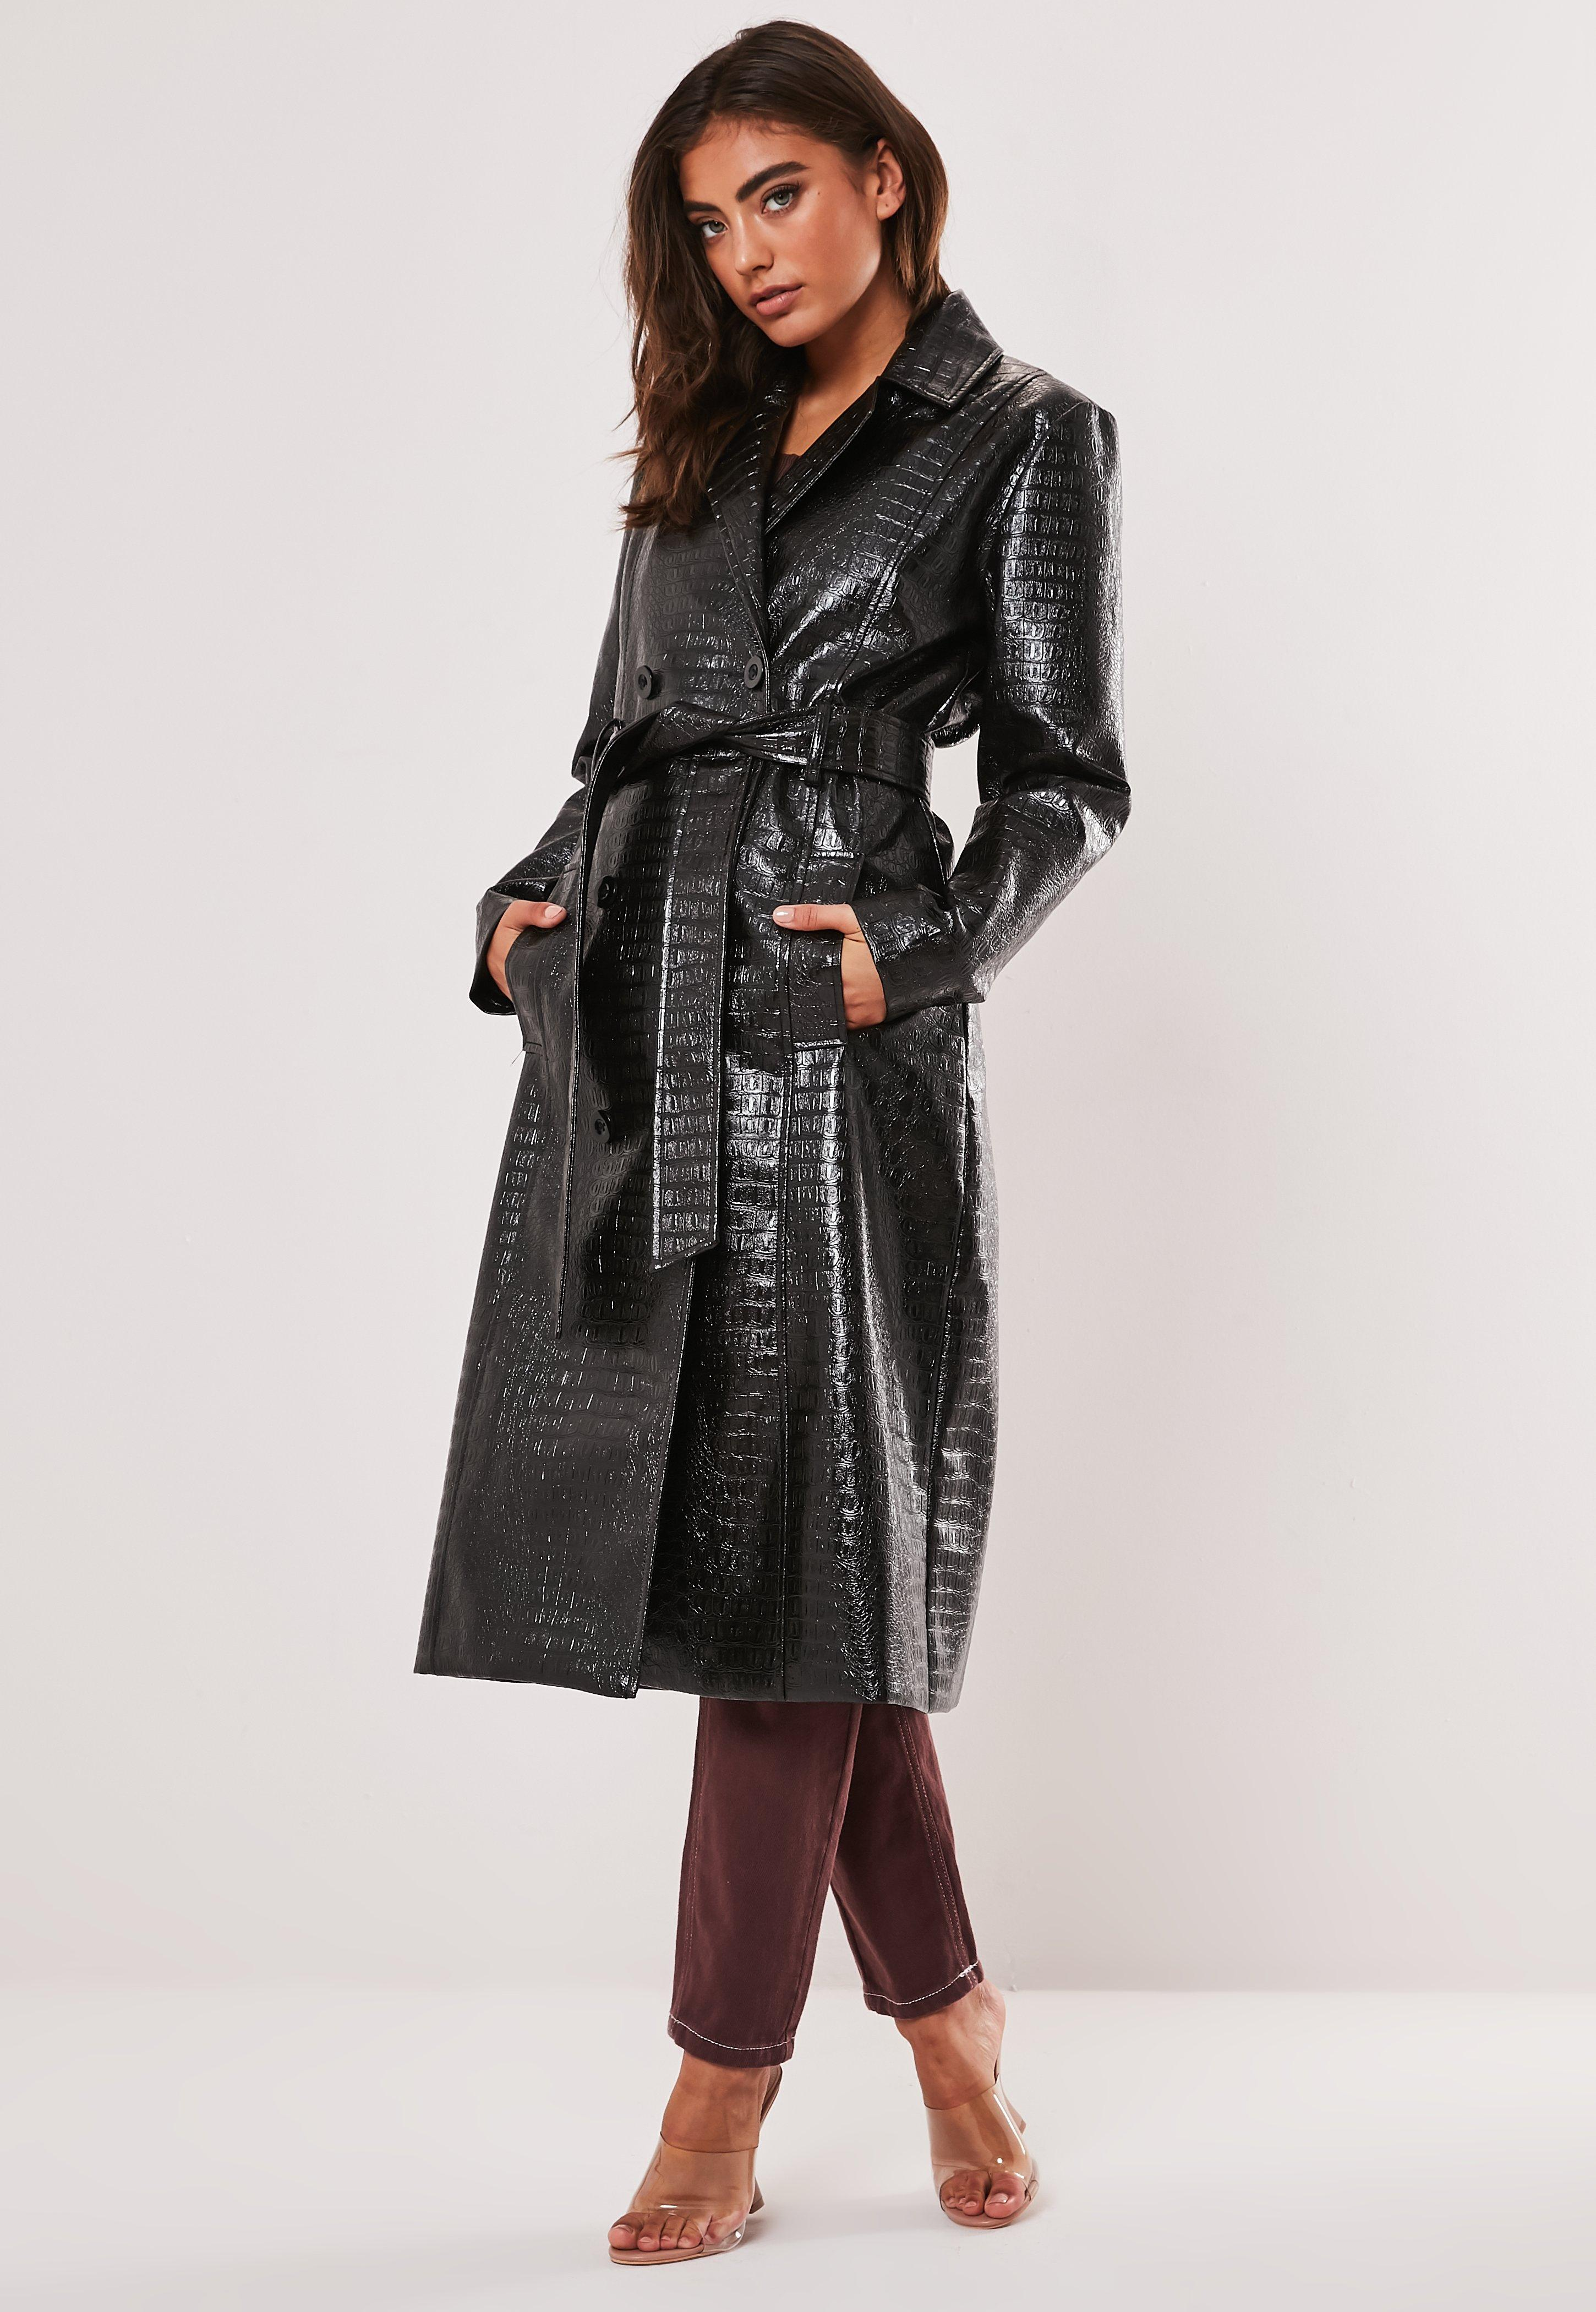 luxury where can i buy on feet images of Black Croc Vinyl Trench Coat